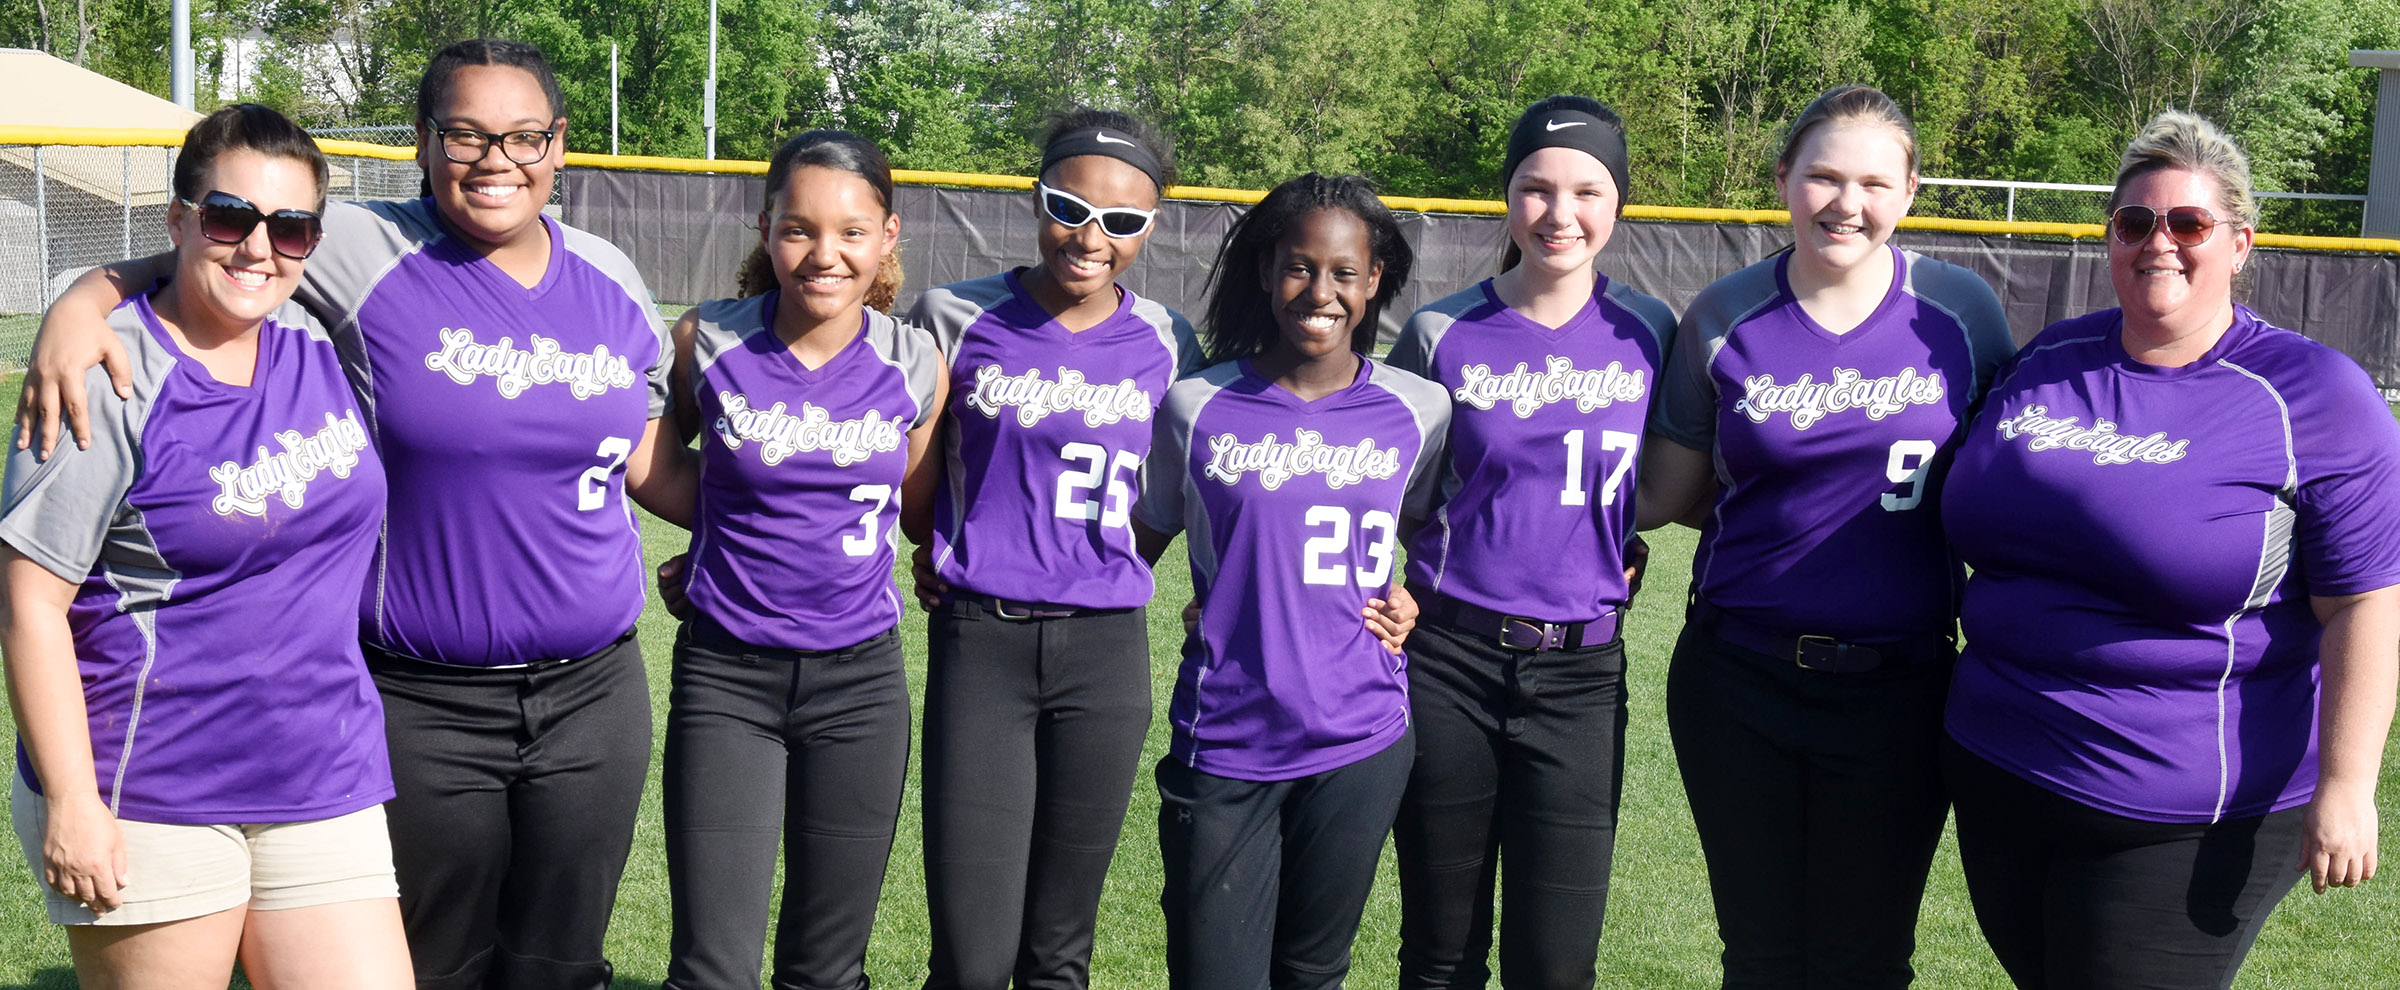 Campbellsville Middle School eighth-grade softball players were honored on Thursday, May 10. They are, from left, head coach Kathy England, Brae Washington, Alexis Thomas, Bri Gowdy, Myricle Gholston, Karley Morris, Isabella Vannice and assistant coach Allison Cox.